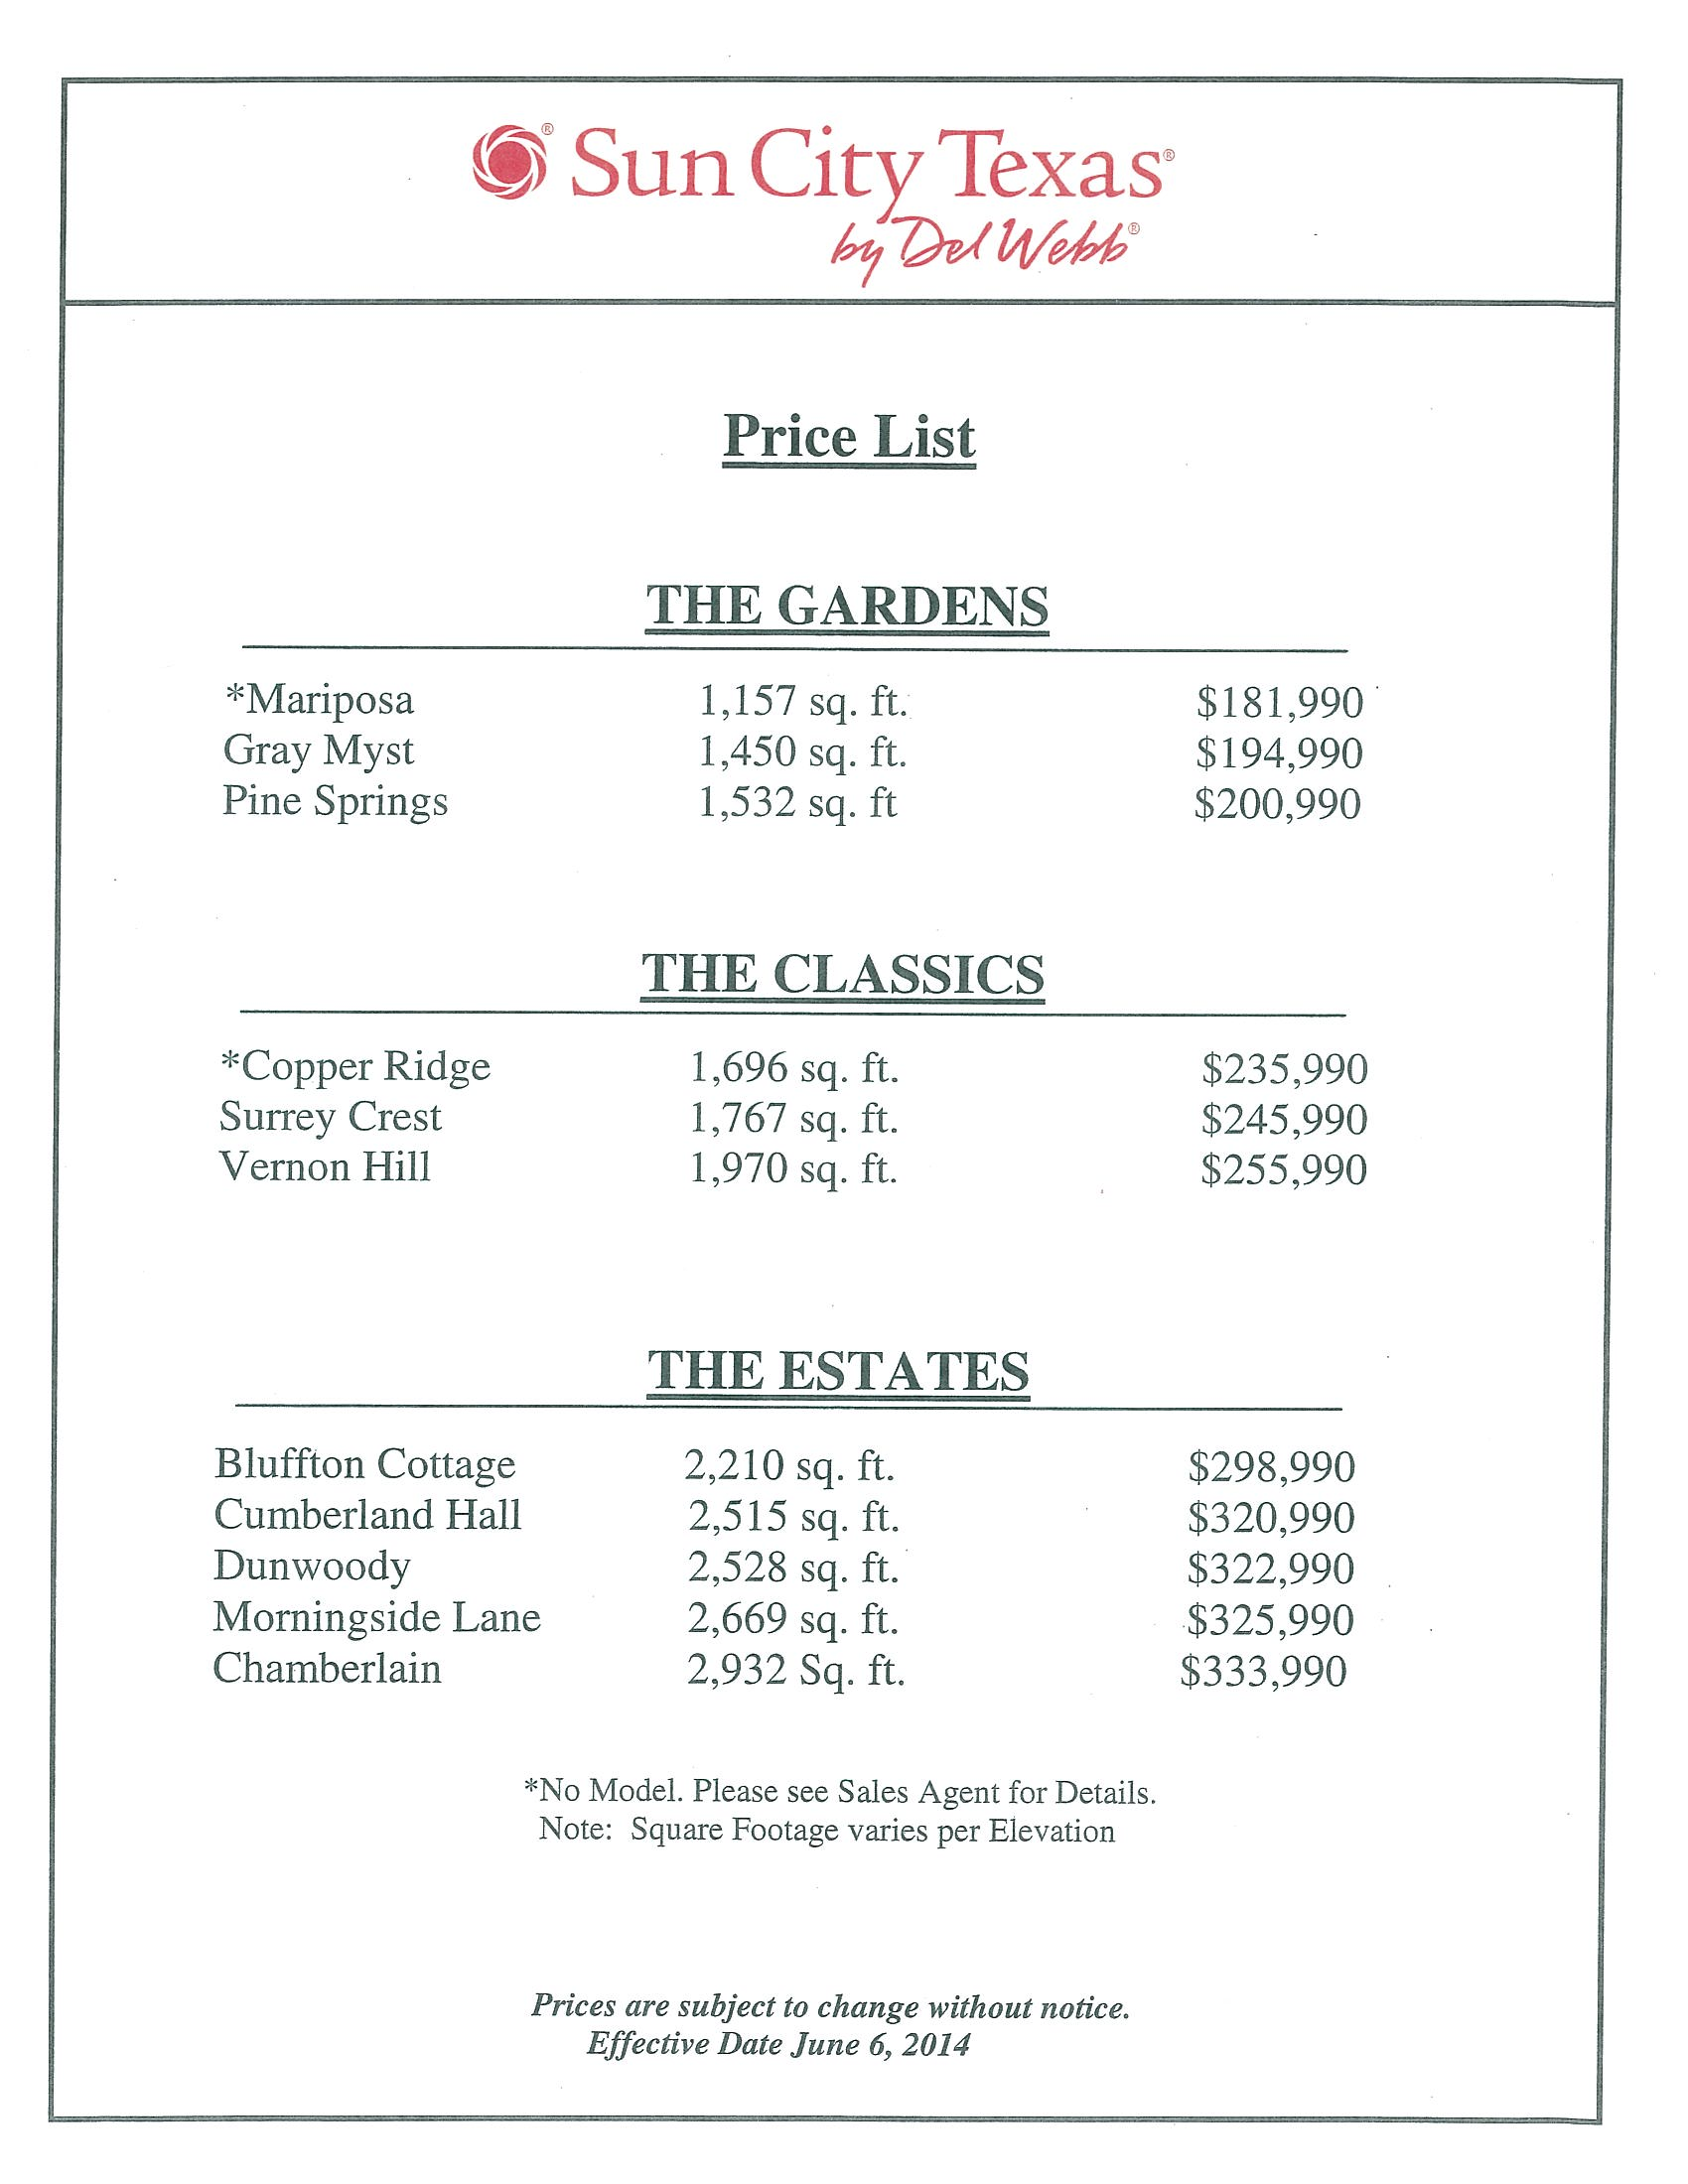 Sun city texas new home price list 6 6 14 c o rugg realty llc for New home price list